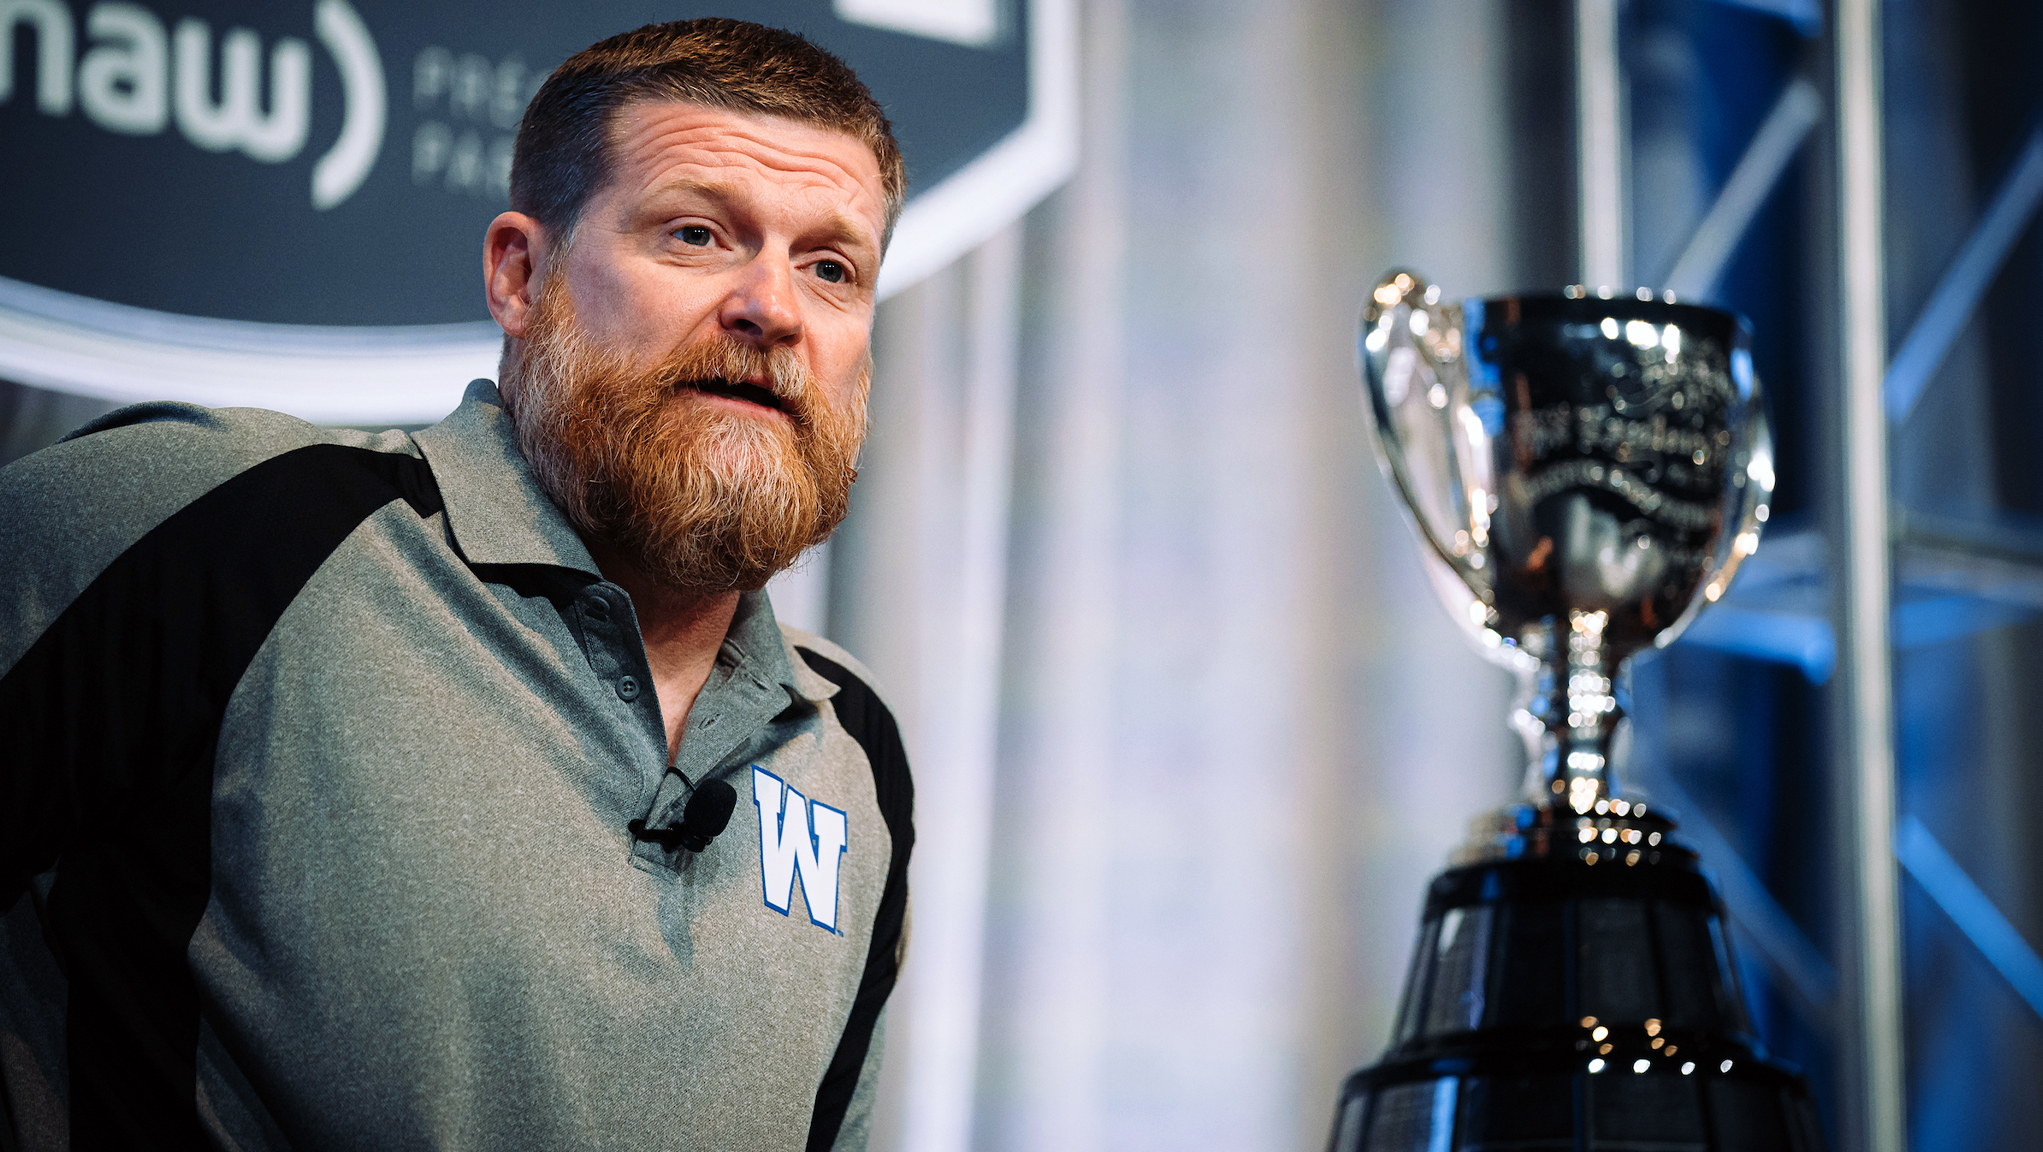 Nye: Off-season moves give Bombers chance to repeat - CFL.ca